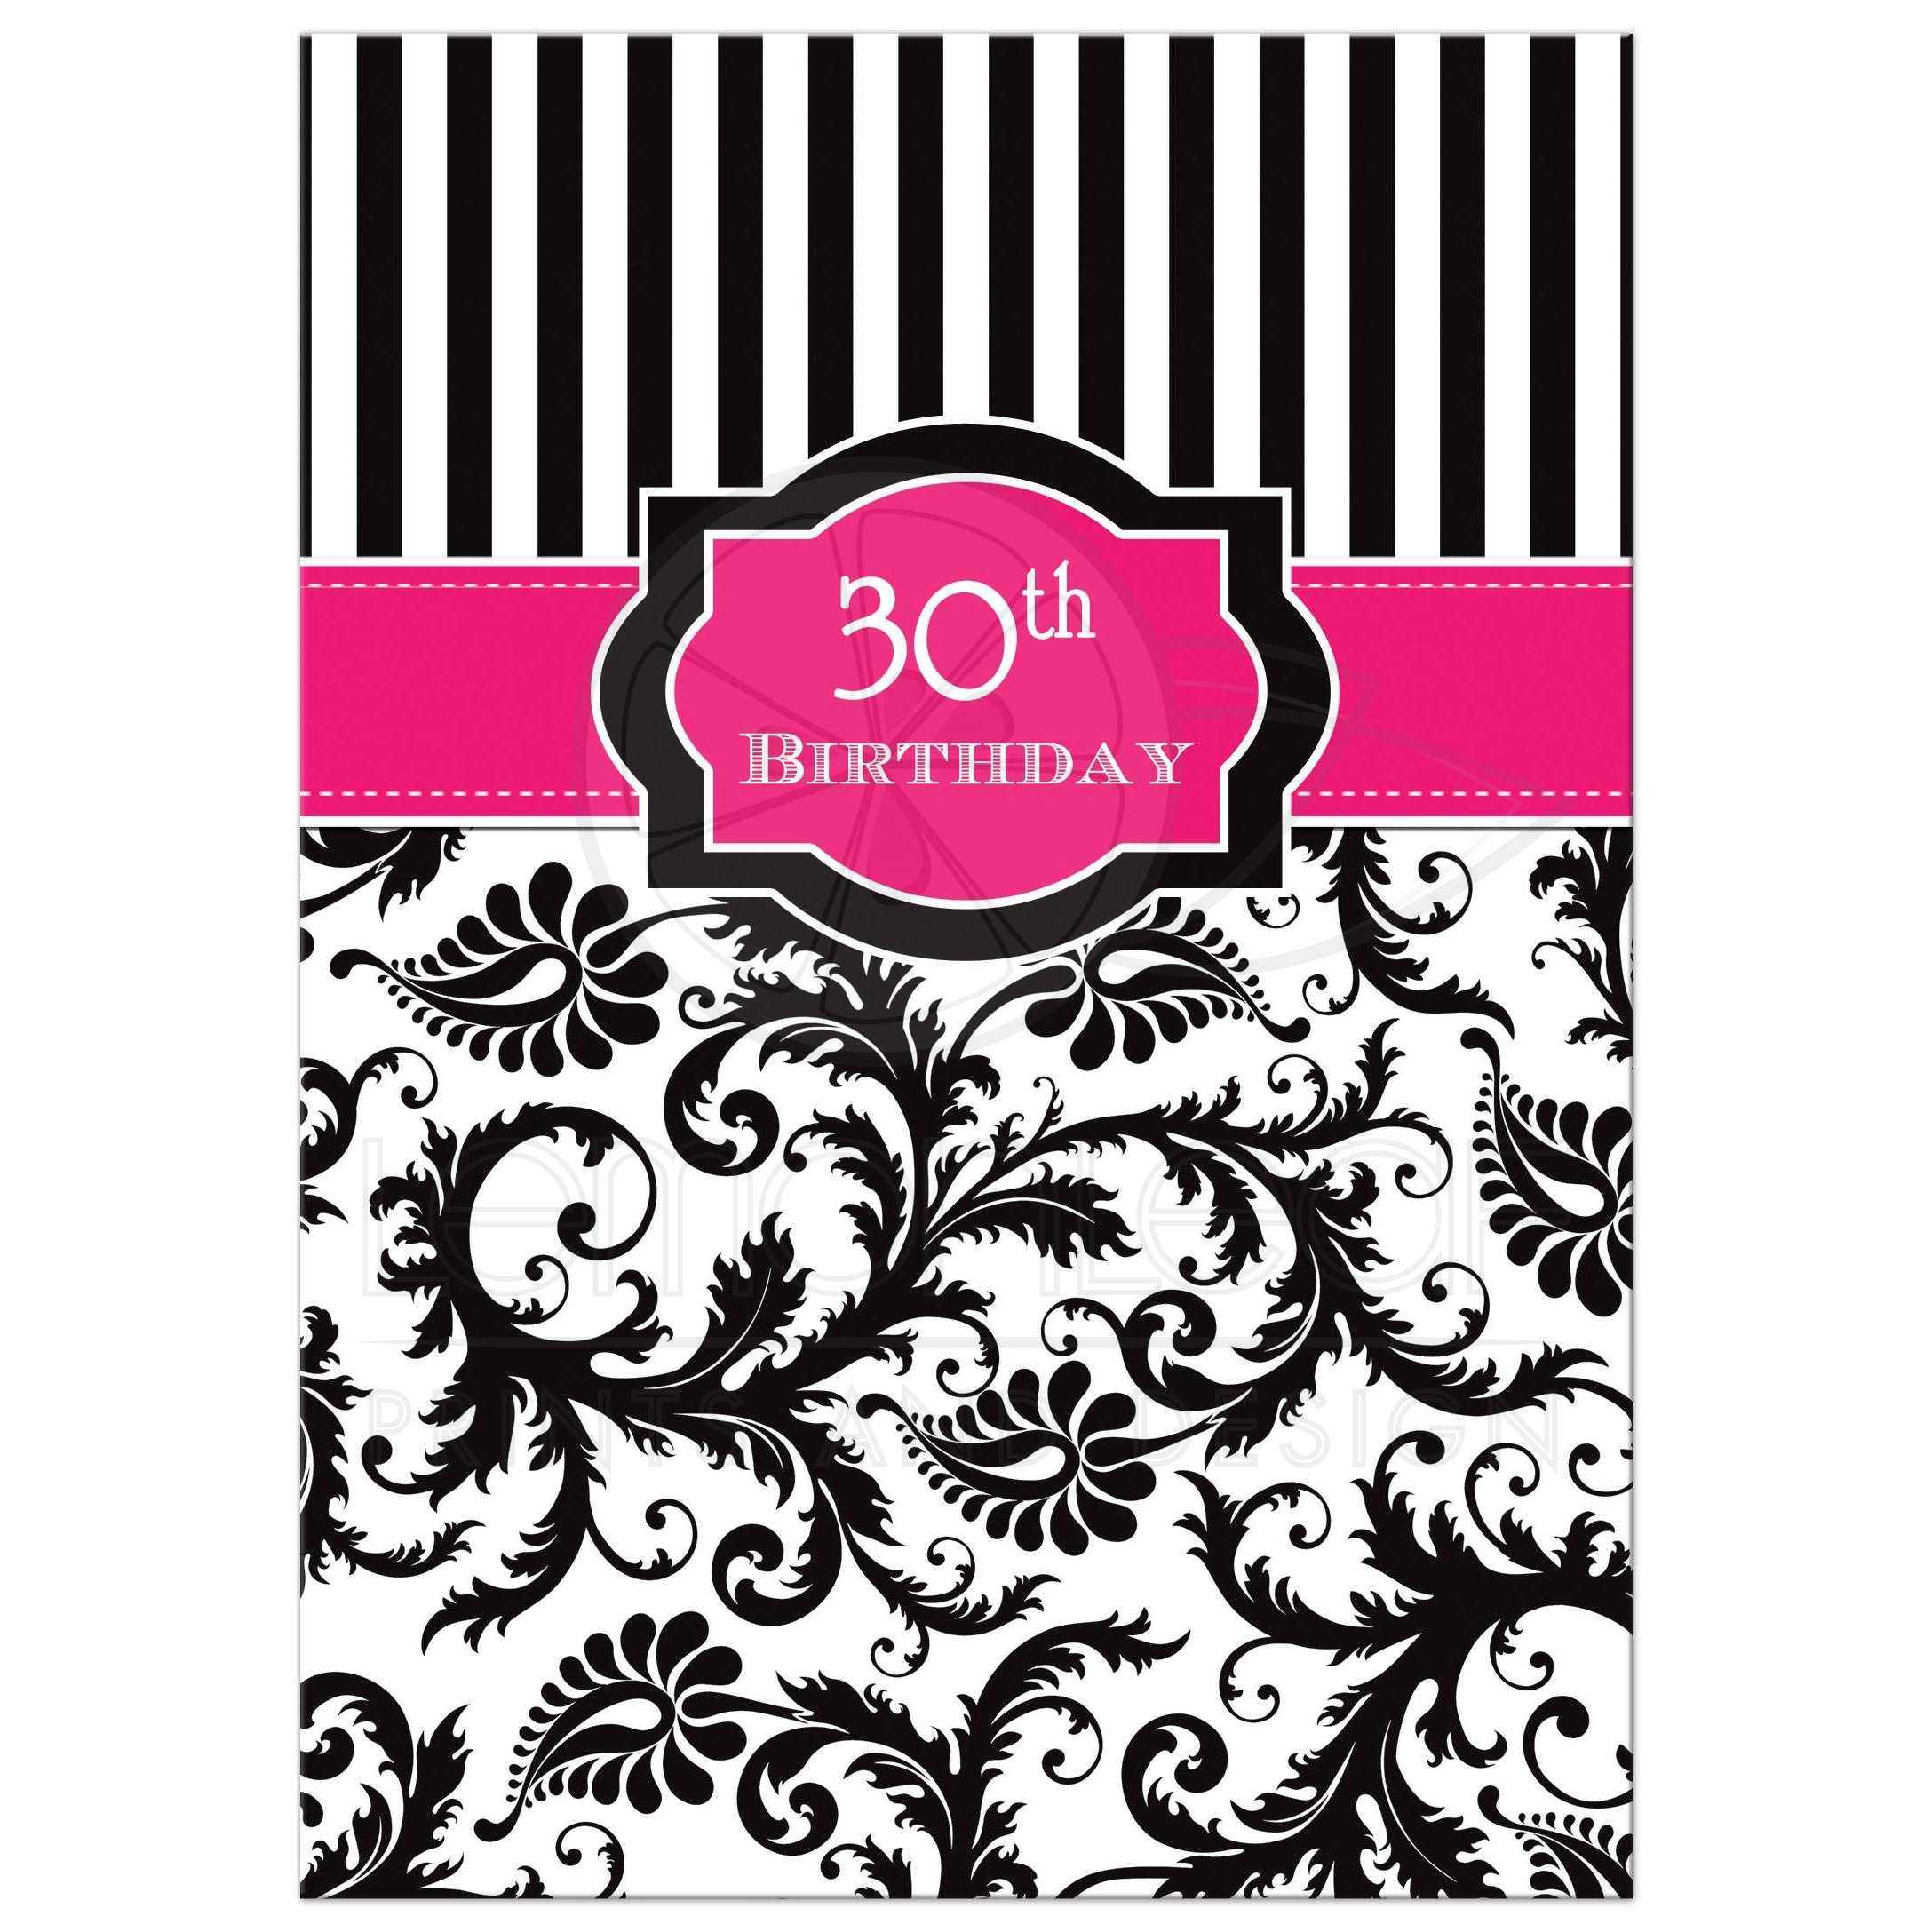 30th Birthday Party Invitation In Pink Black And White Stripes With Damask